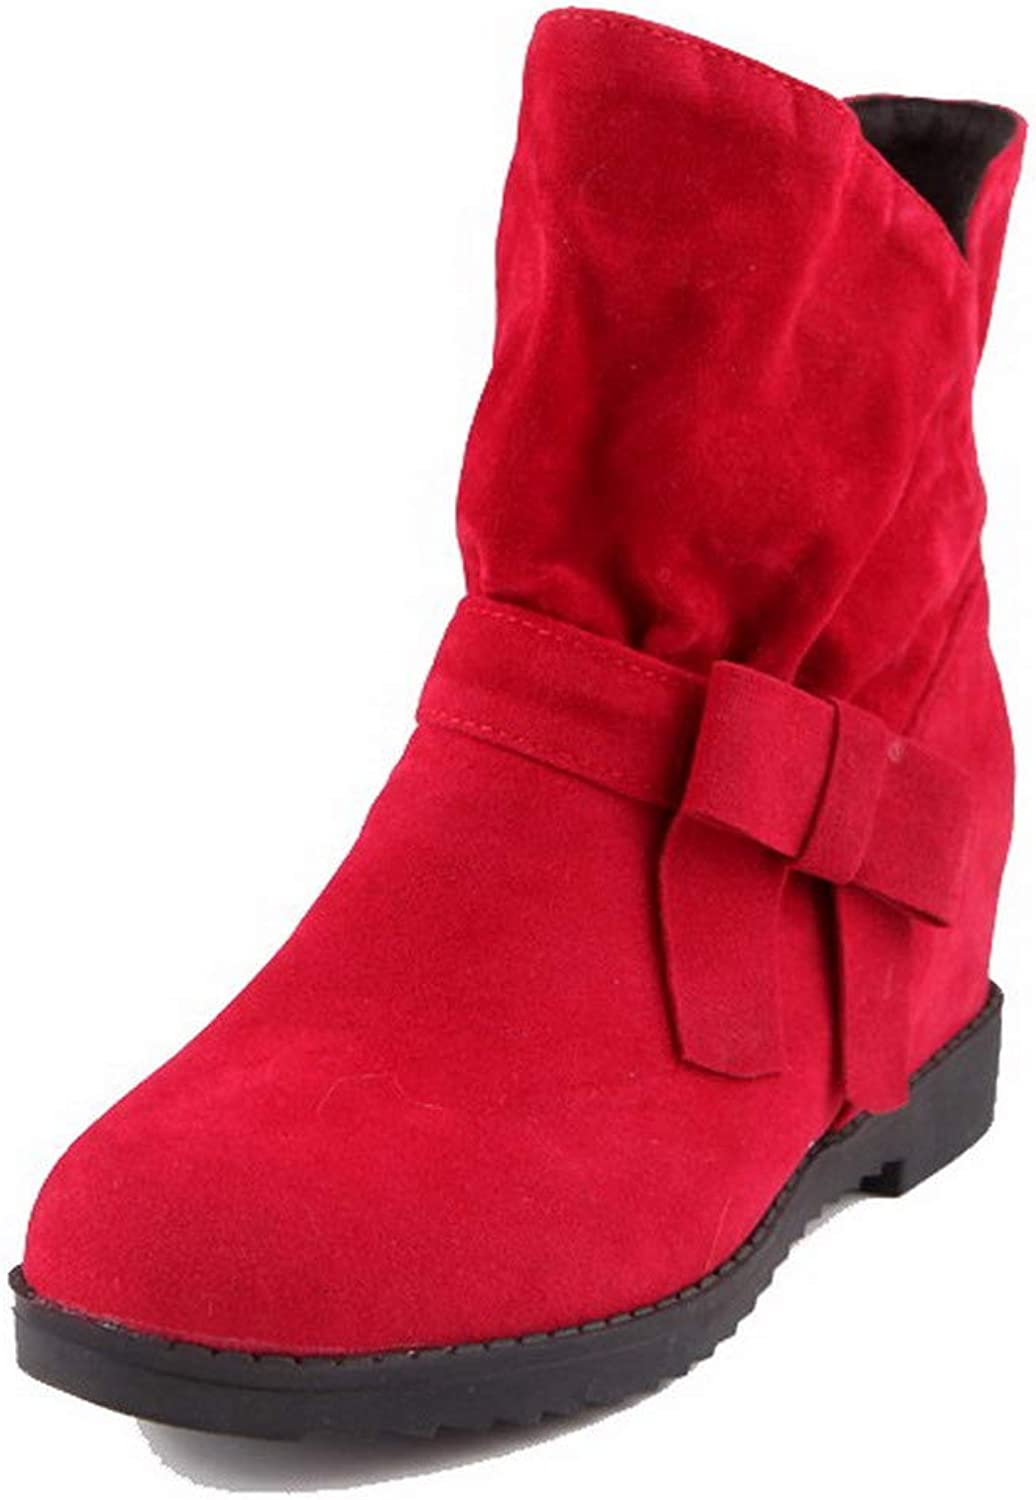 WeenFashion Women's Frosted Round-Toe Solid Mid-Calf Kitten-Heels Boots, AMGXX011263